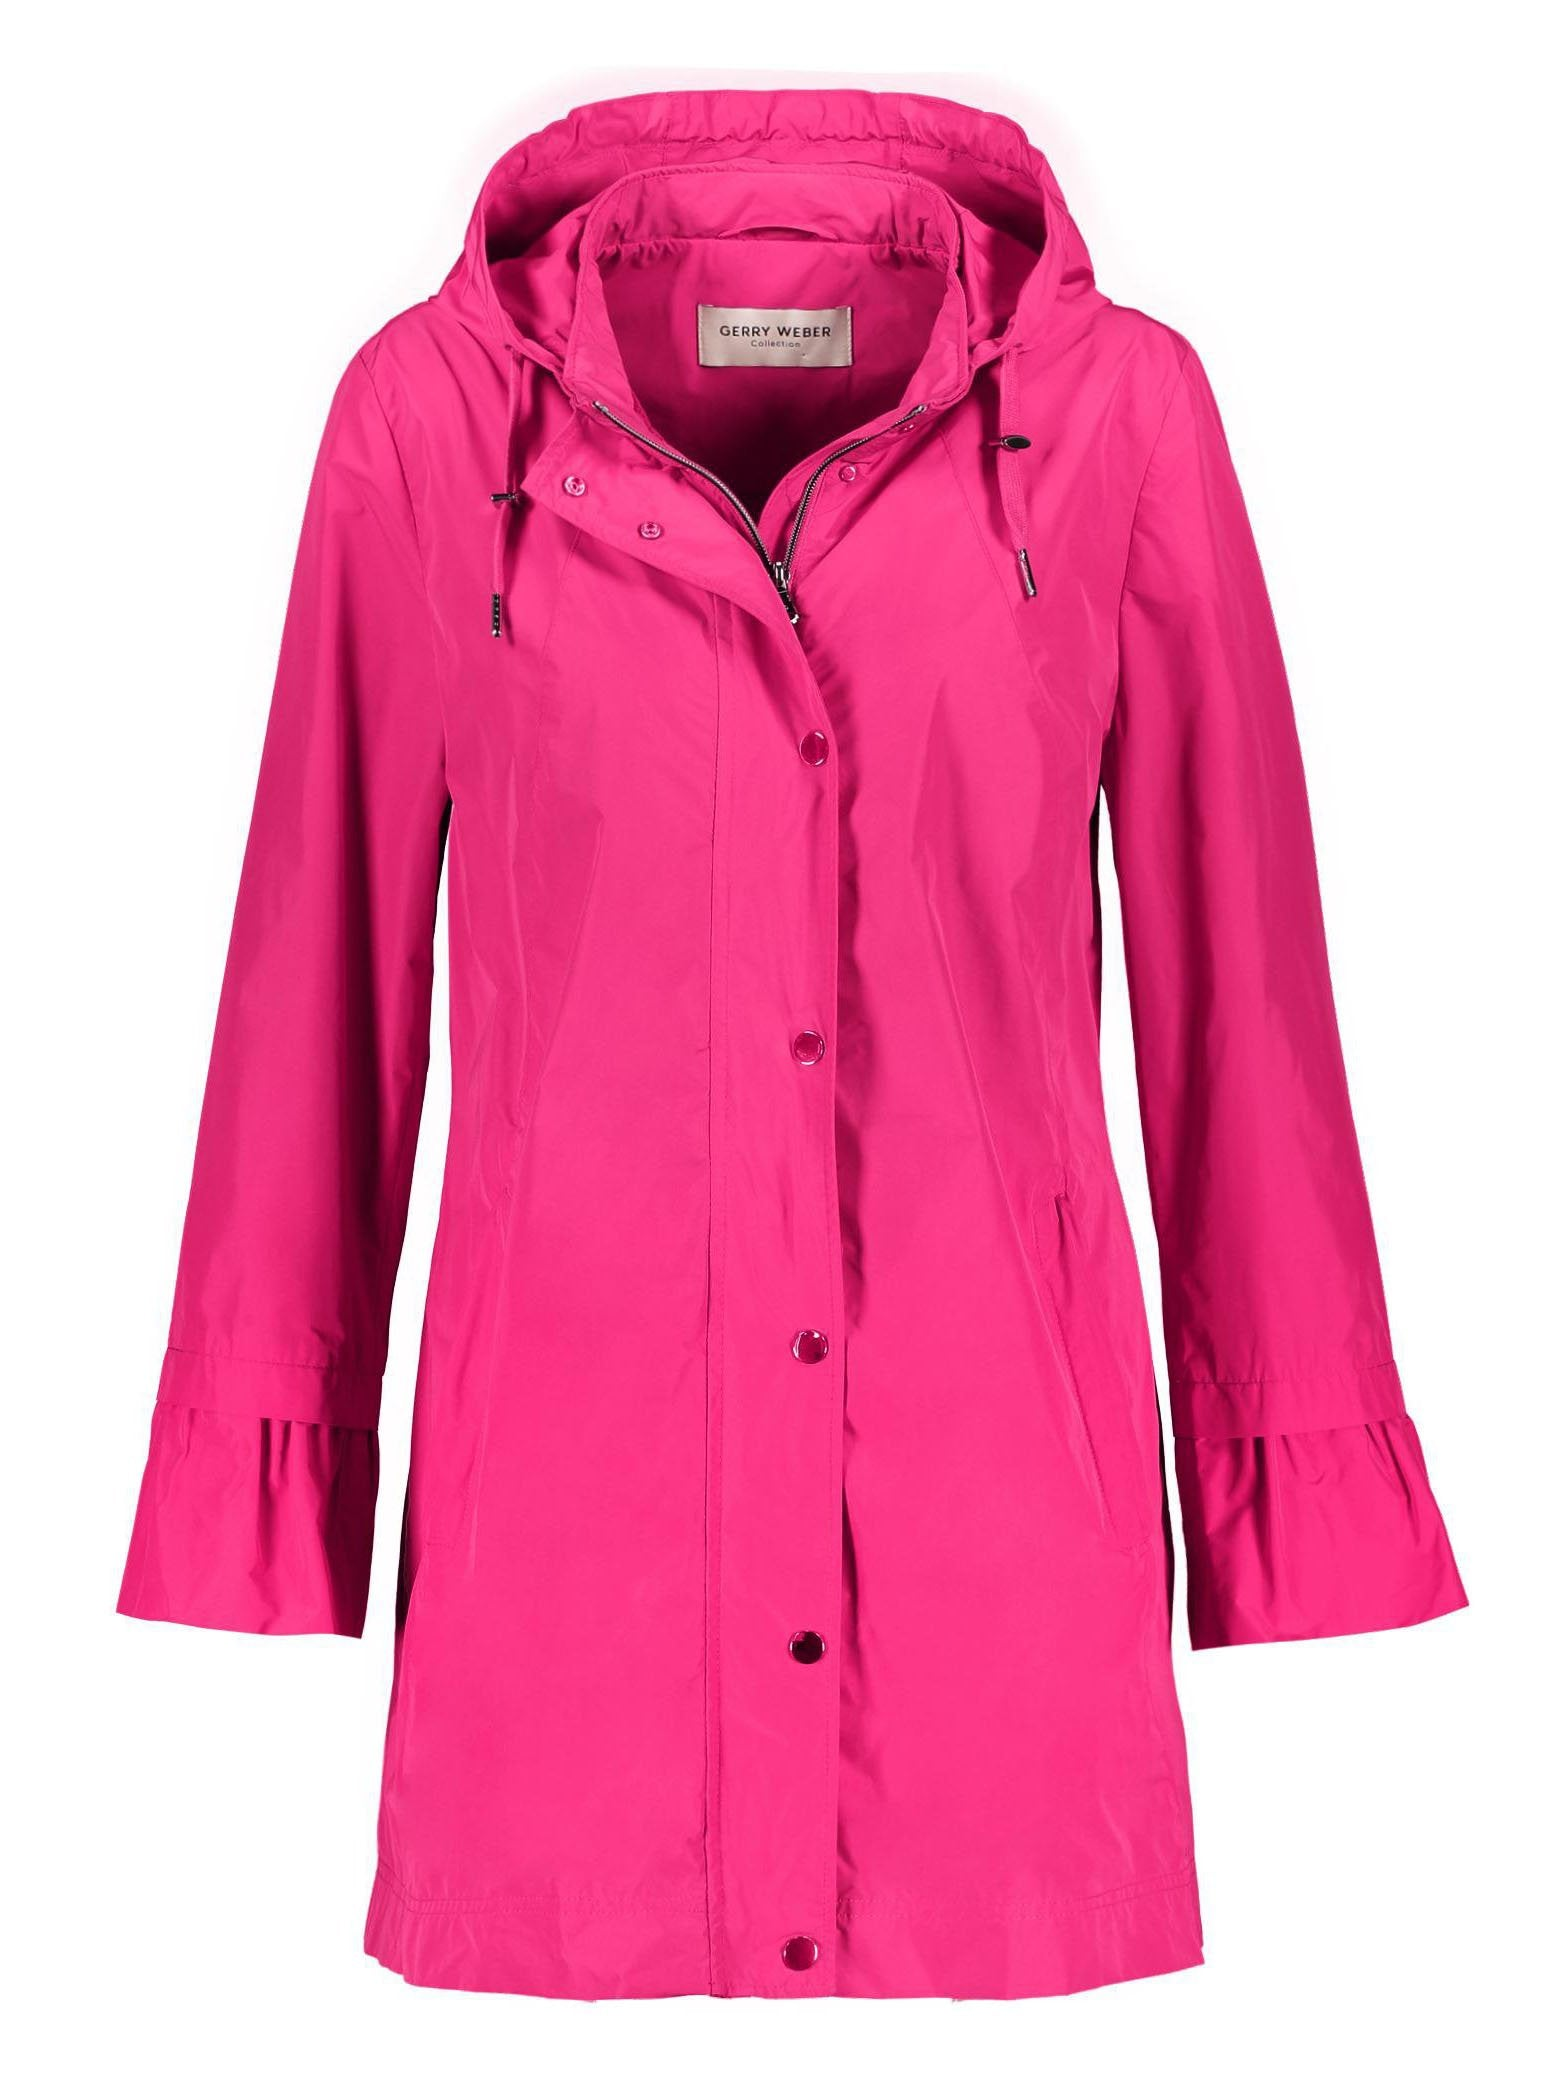 Gerry Weber Bright Pink Rain Jacket with Hood and Frilled Cuff